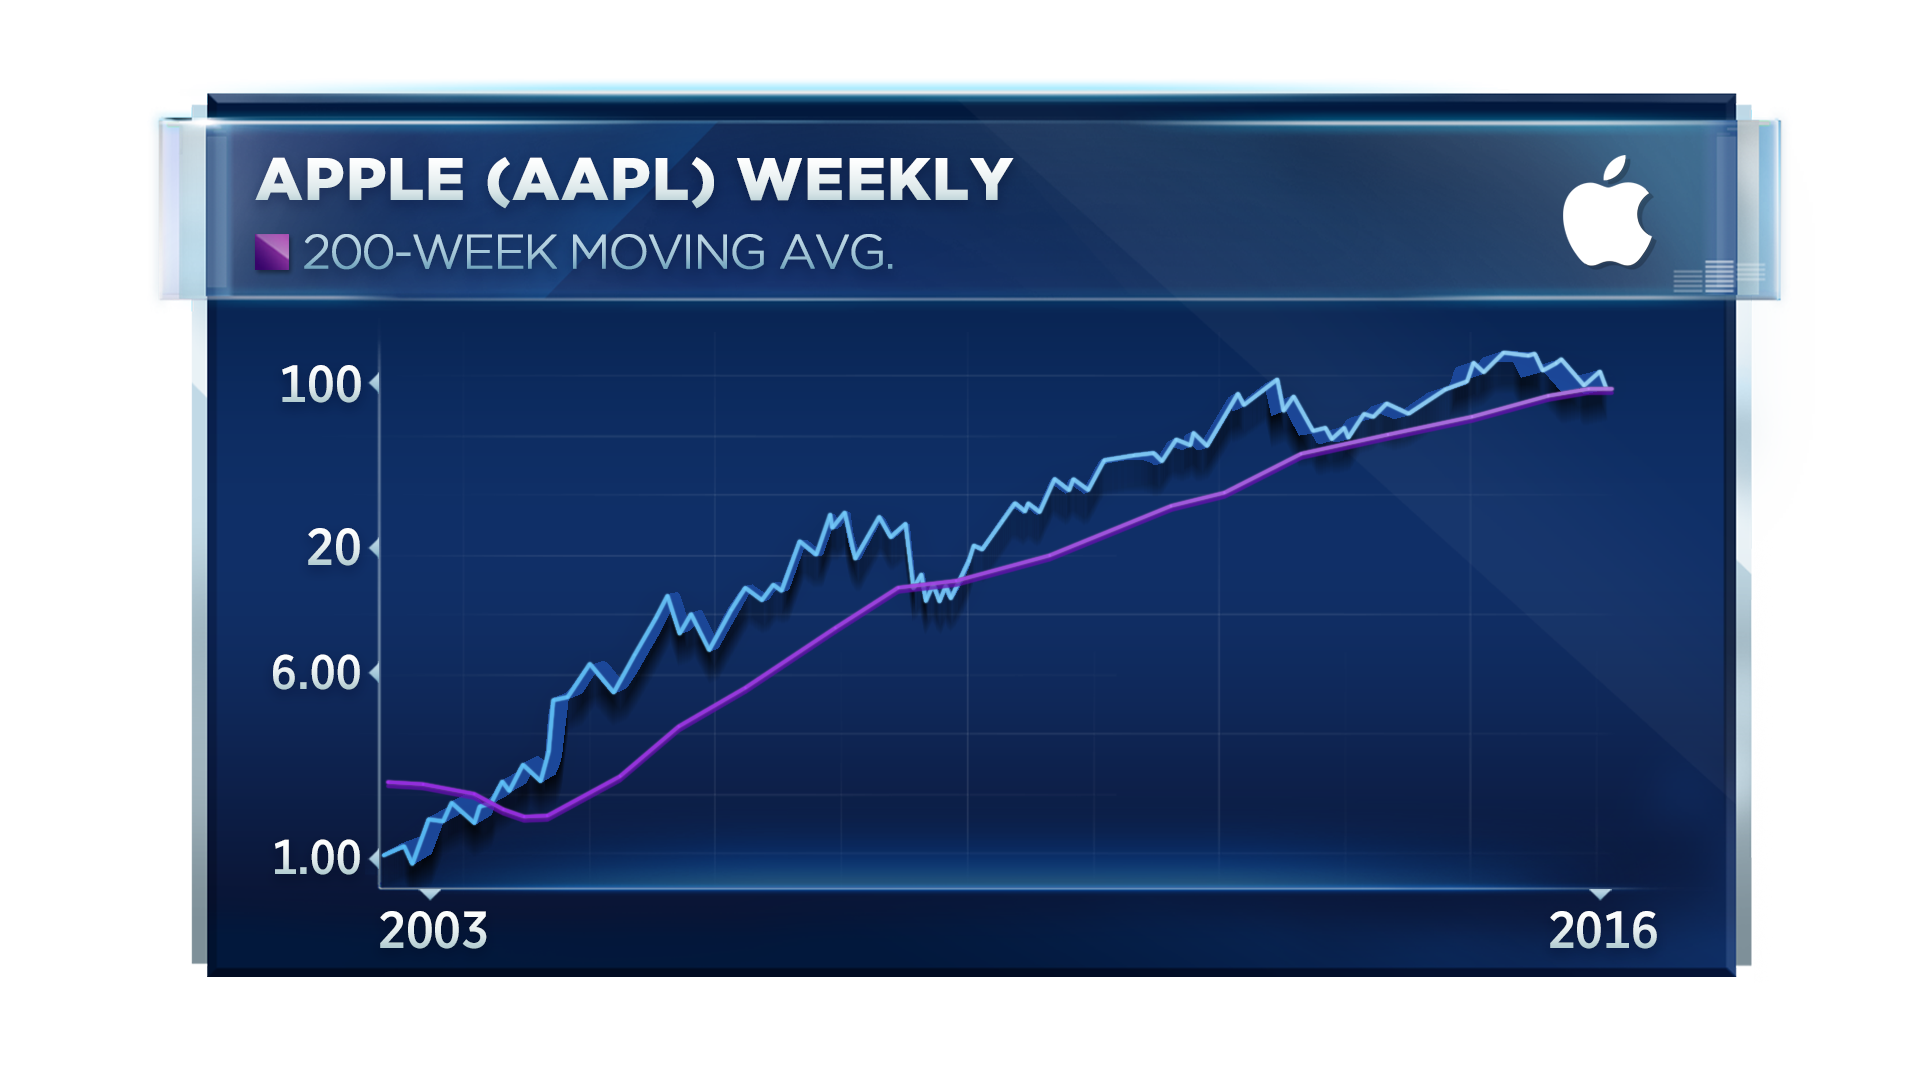 Apple stocks aren't always on the rise